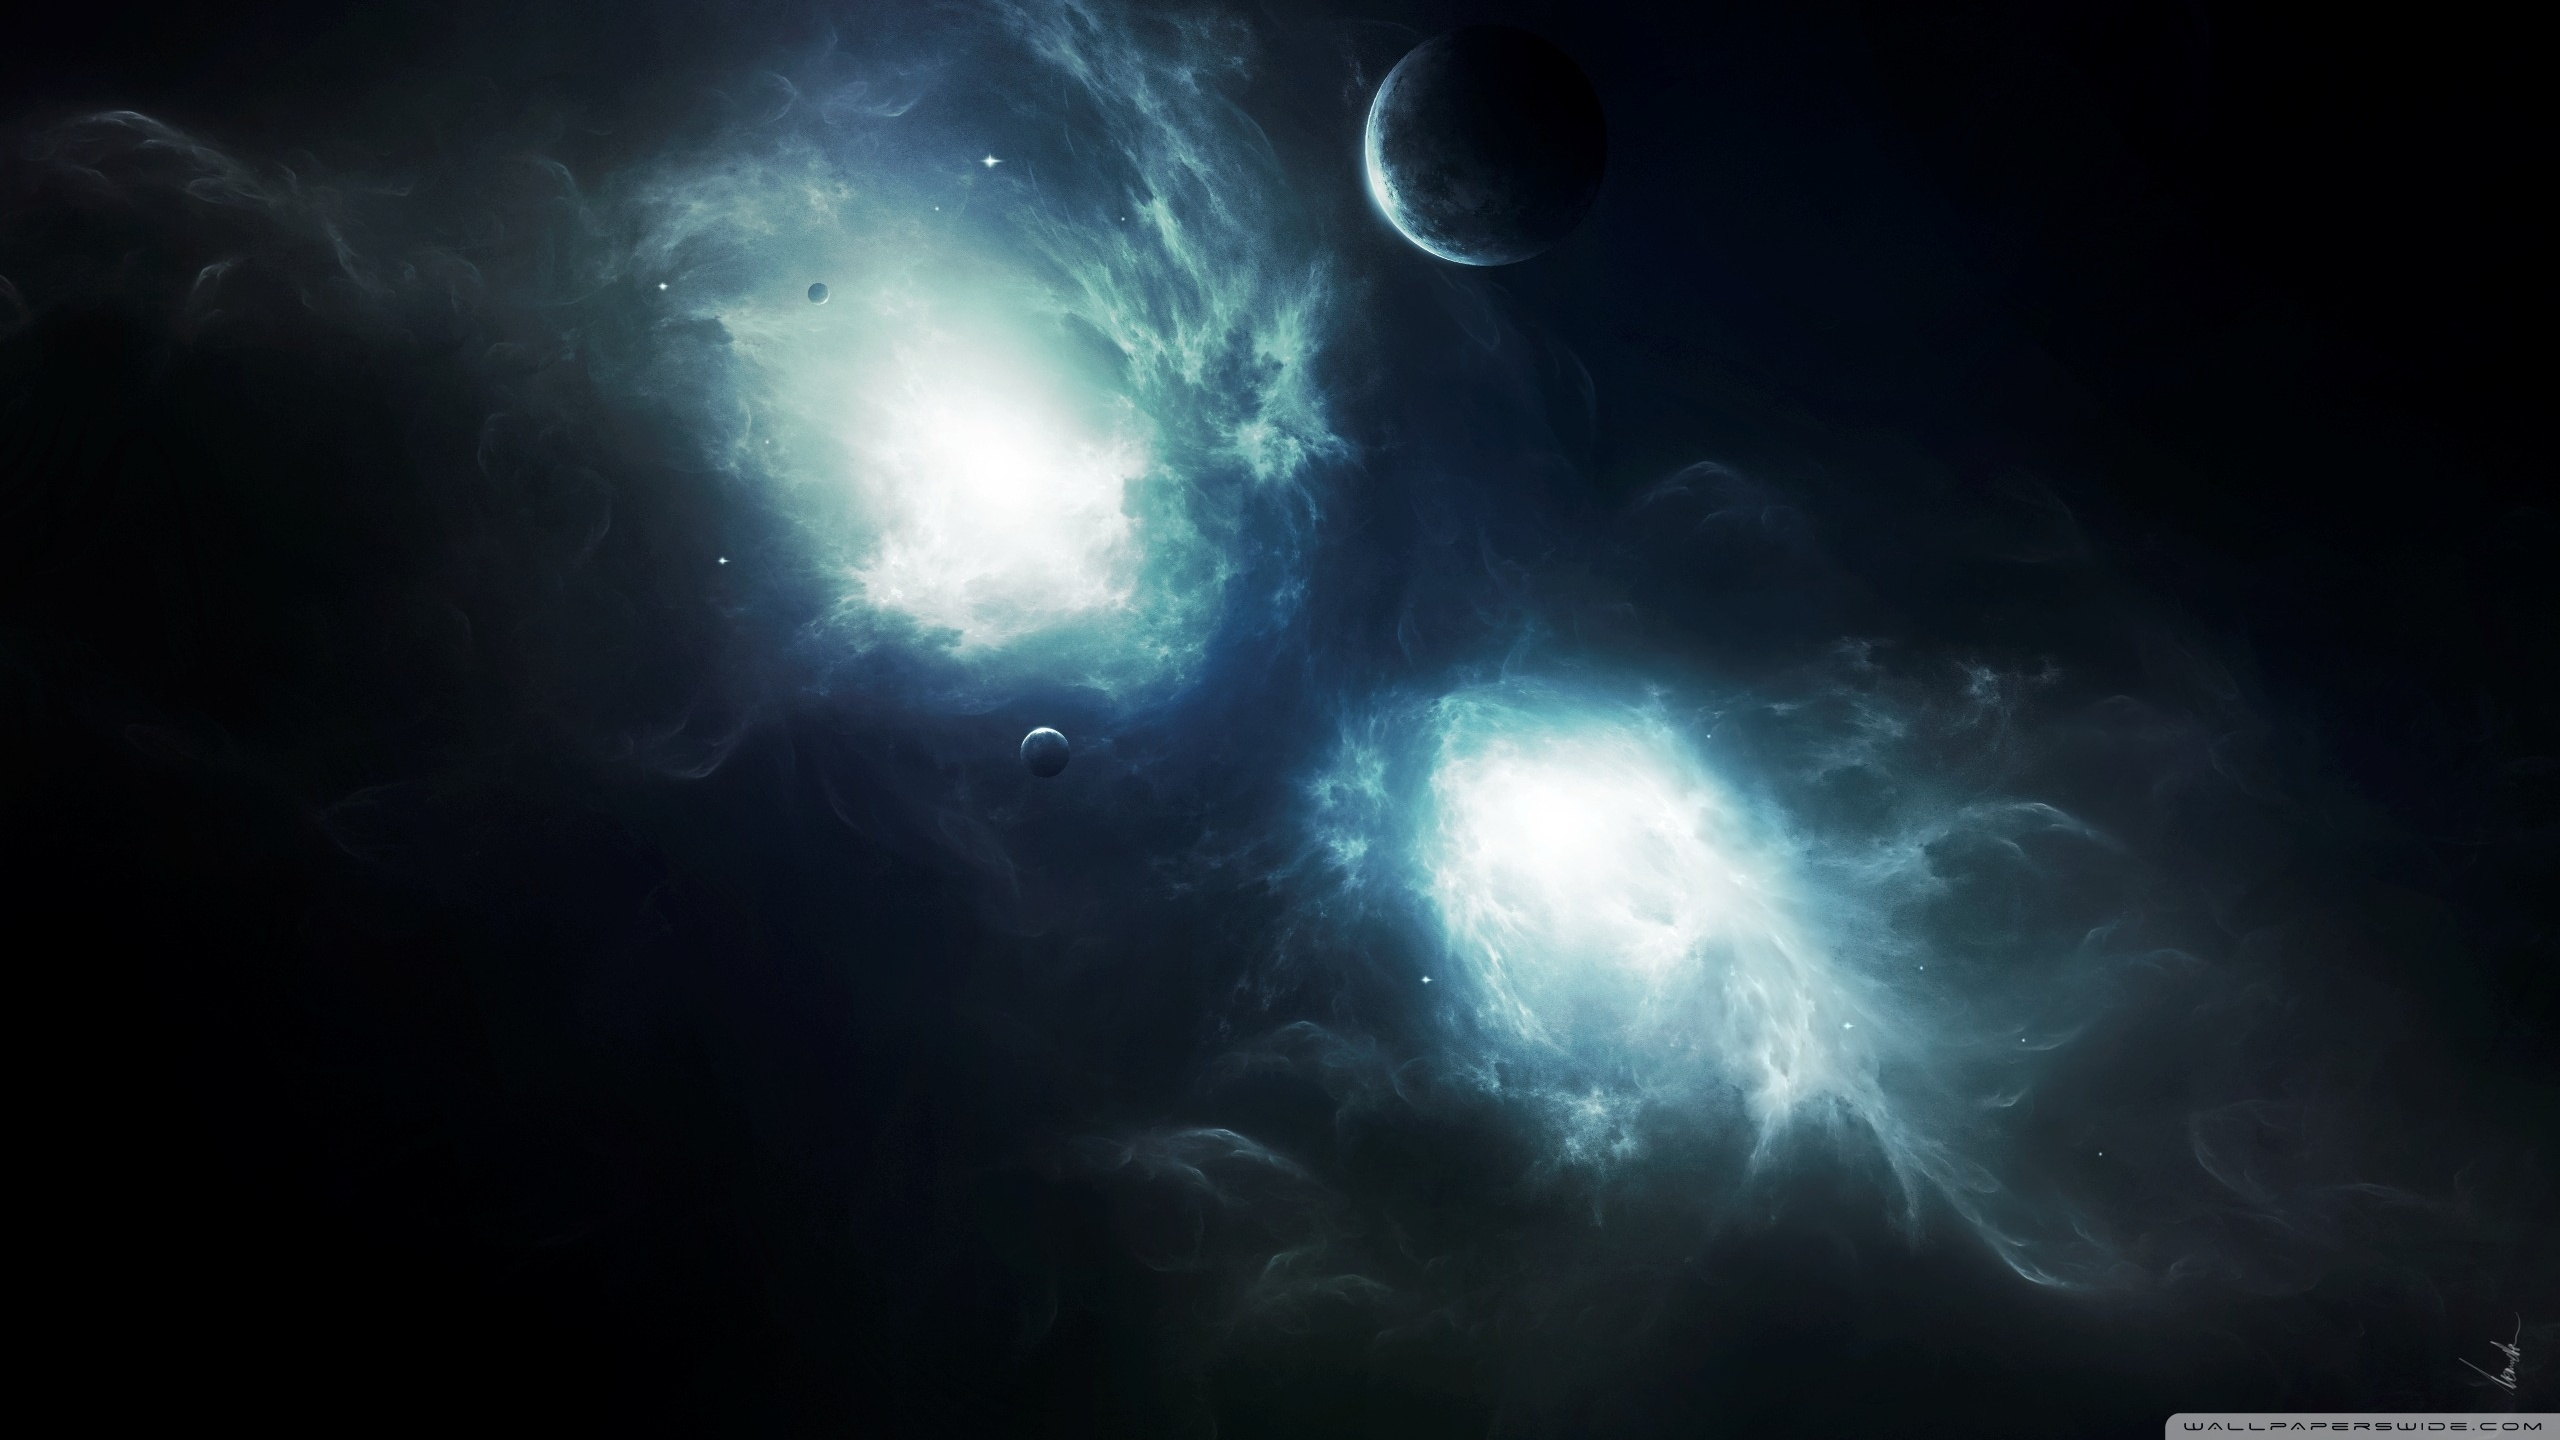 Wormhole in space 2 wallpaper 2560 1440 the jester 39 s corner - Space 2560 x 1440 ...